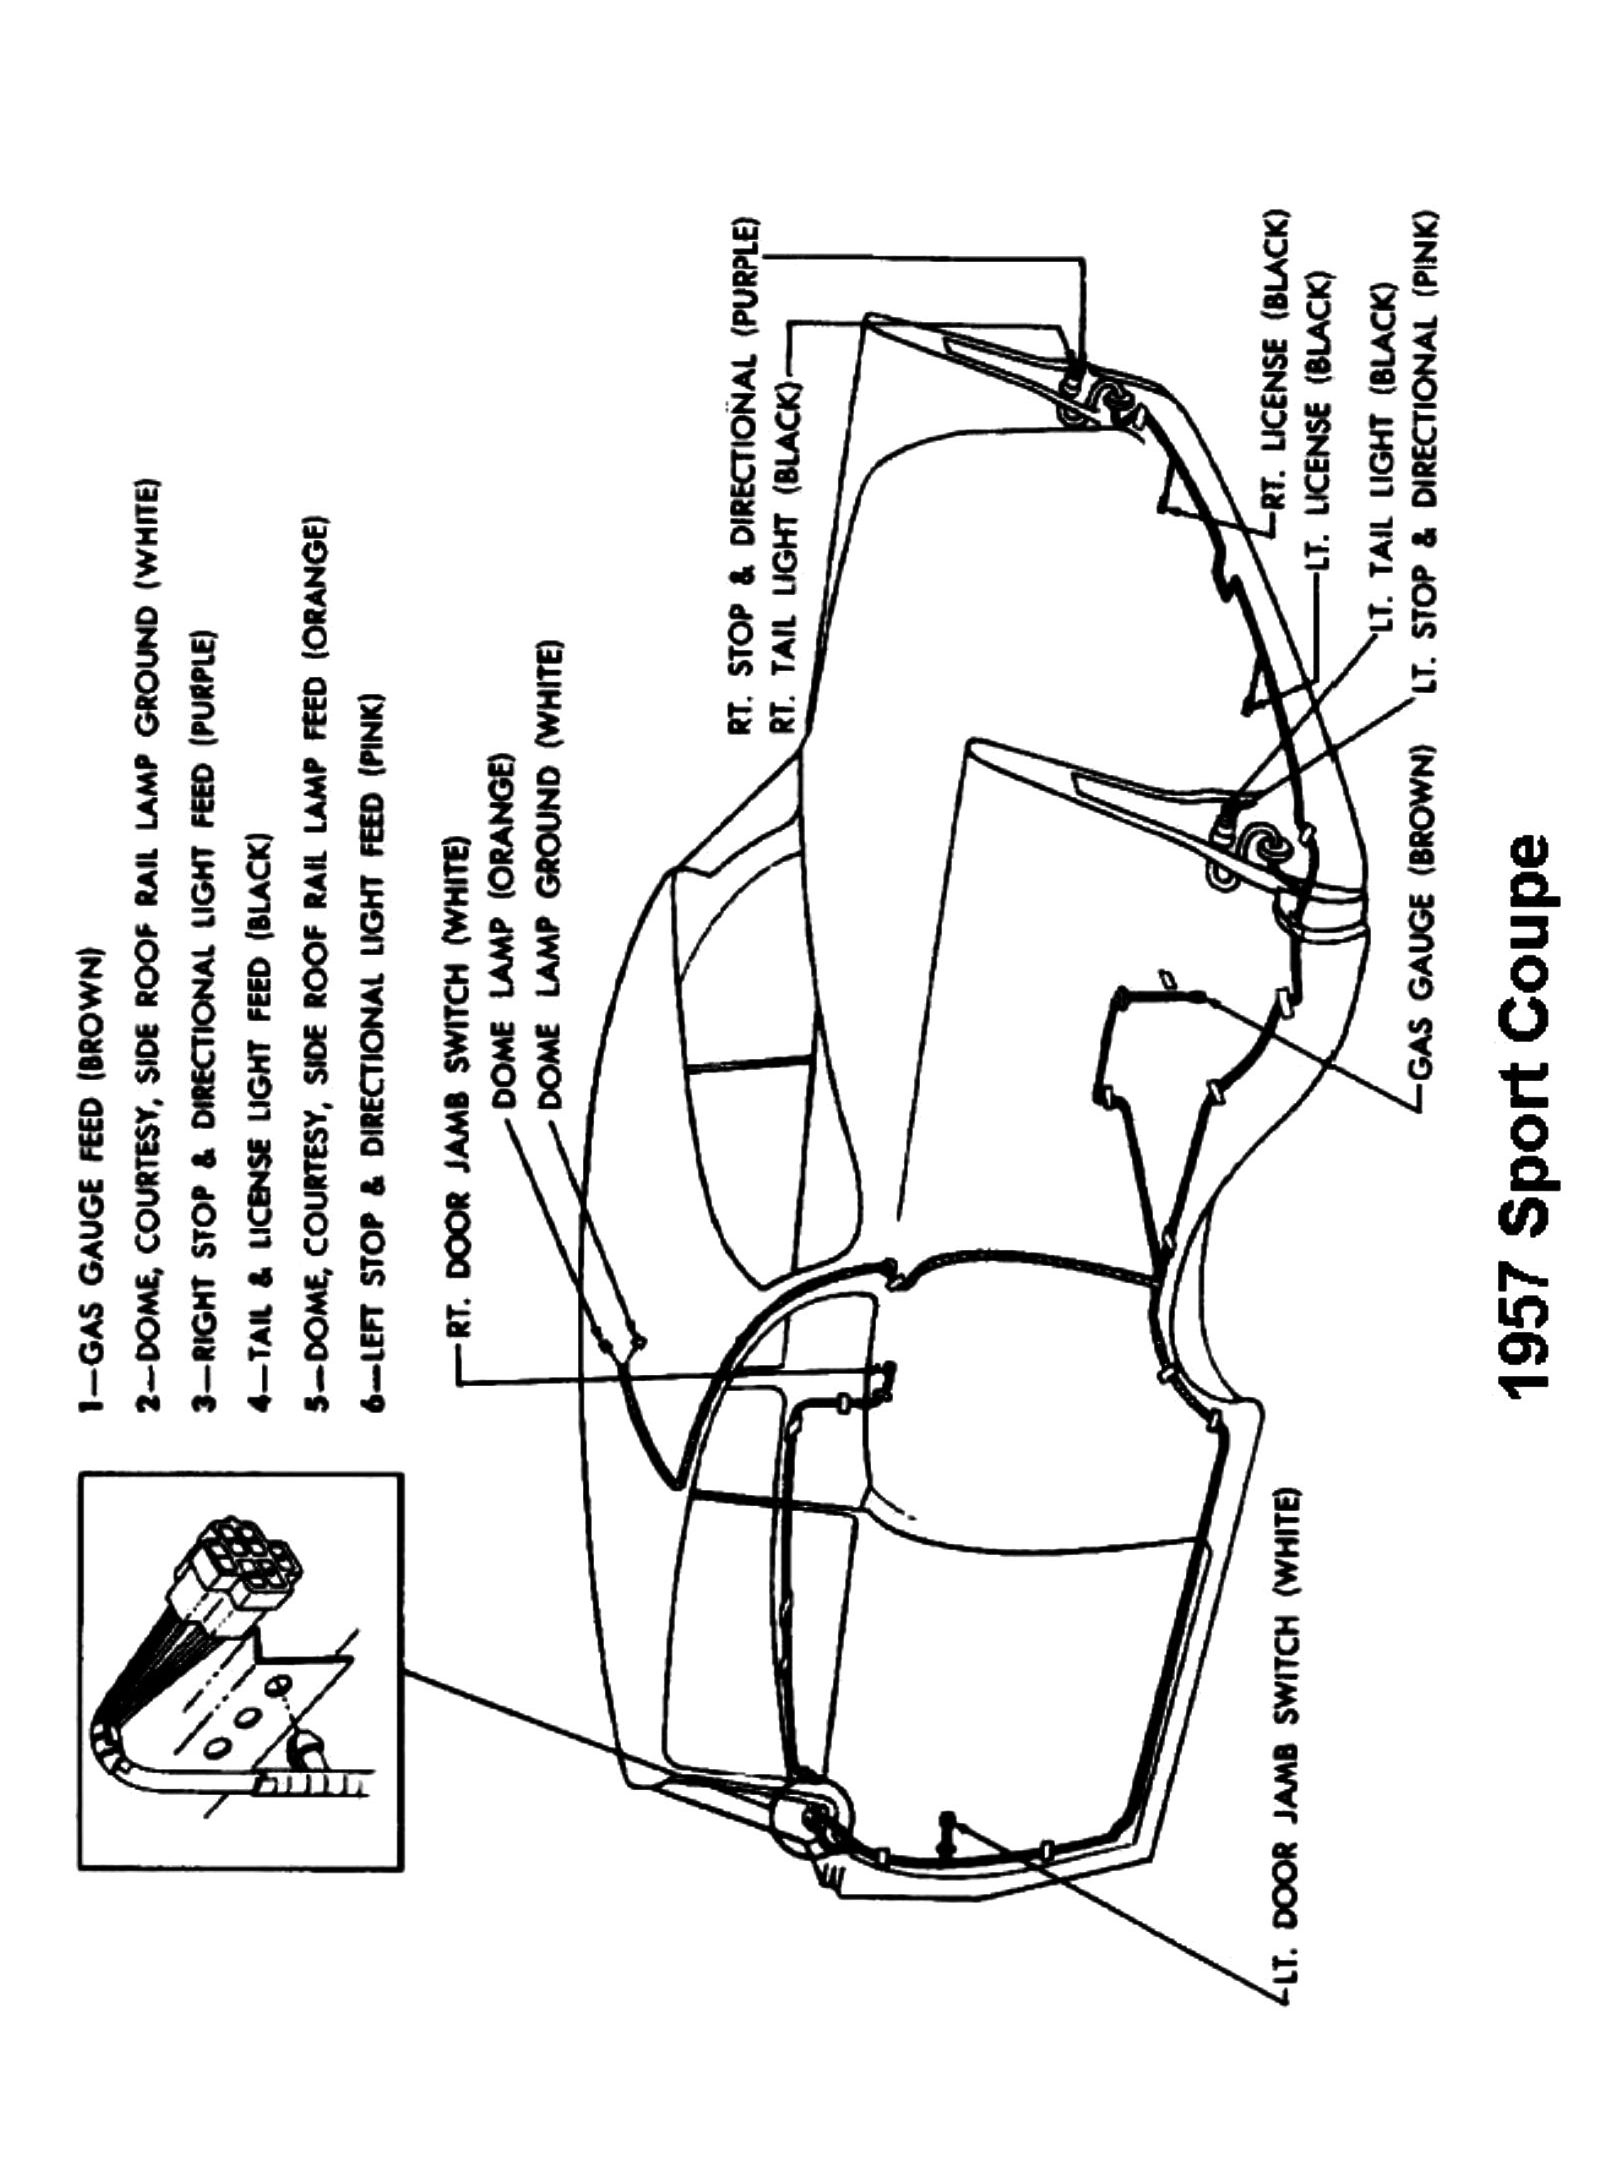 1955 chevy overdrive wiring harness